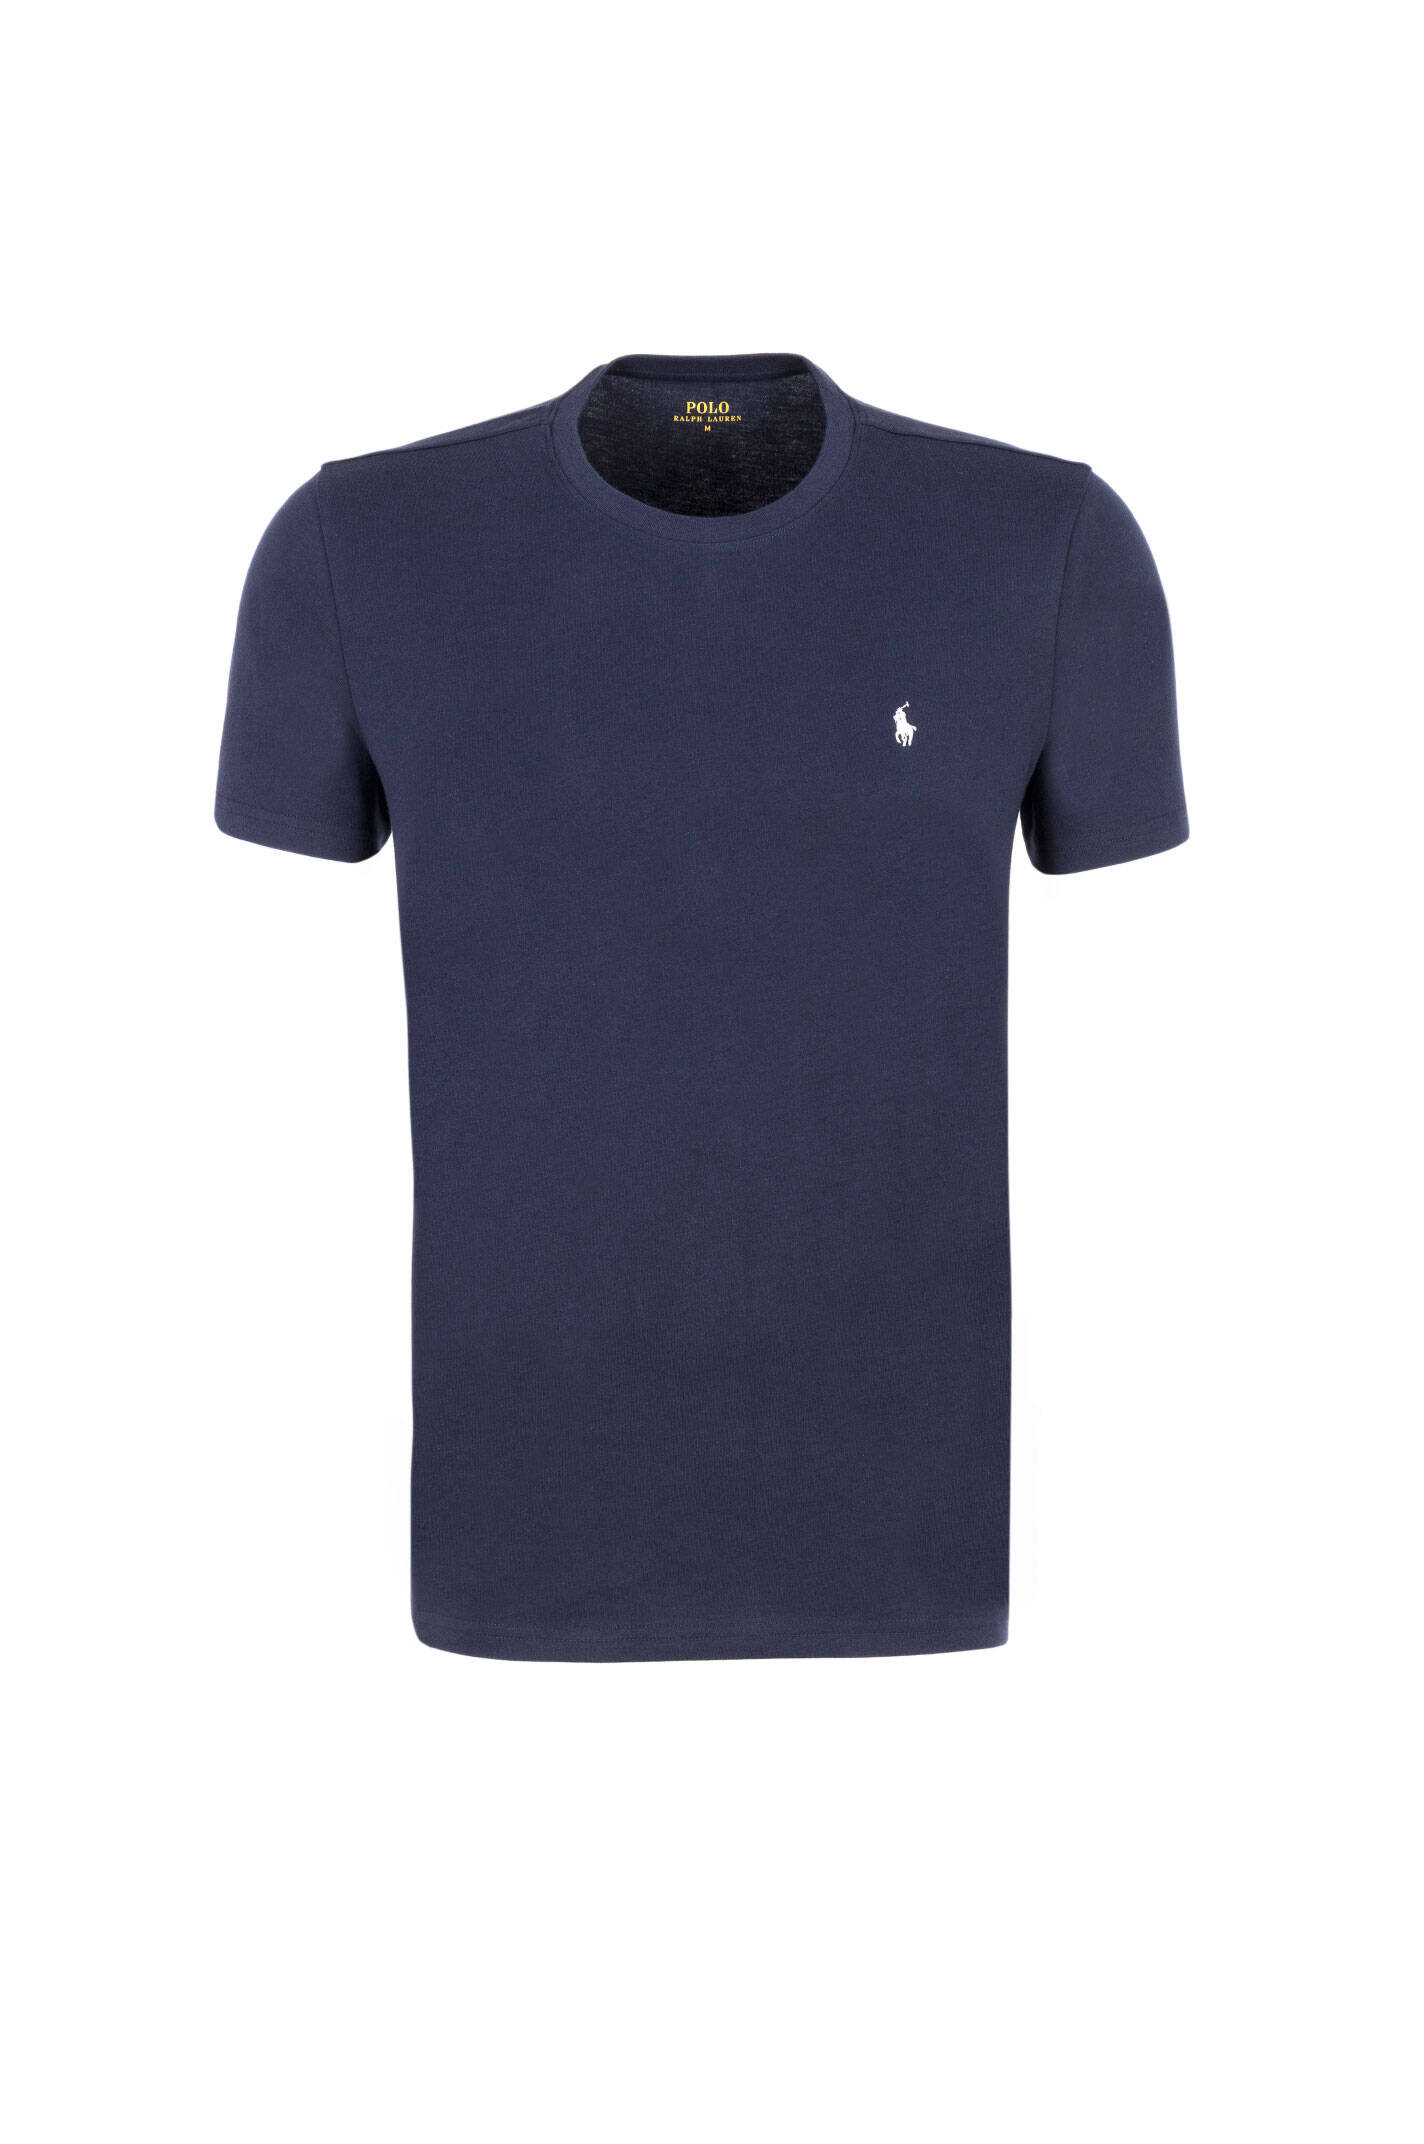 T shirt undershirt polo ralph lauren navy blue for Polo shirt with undershirt